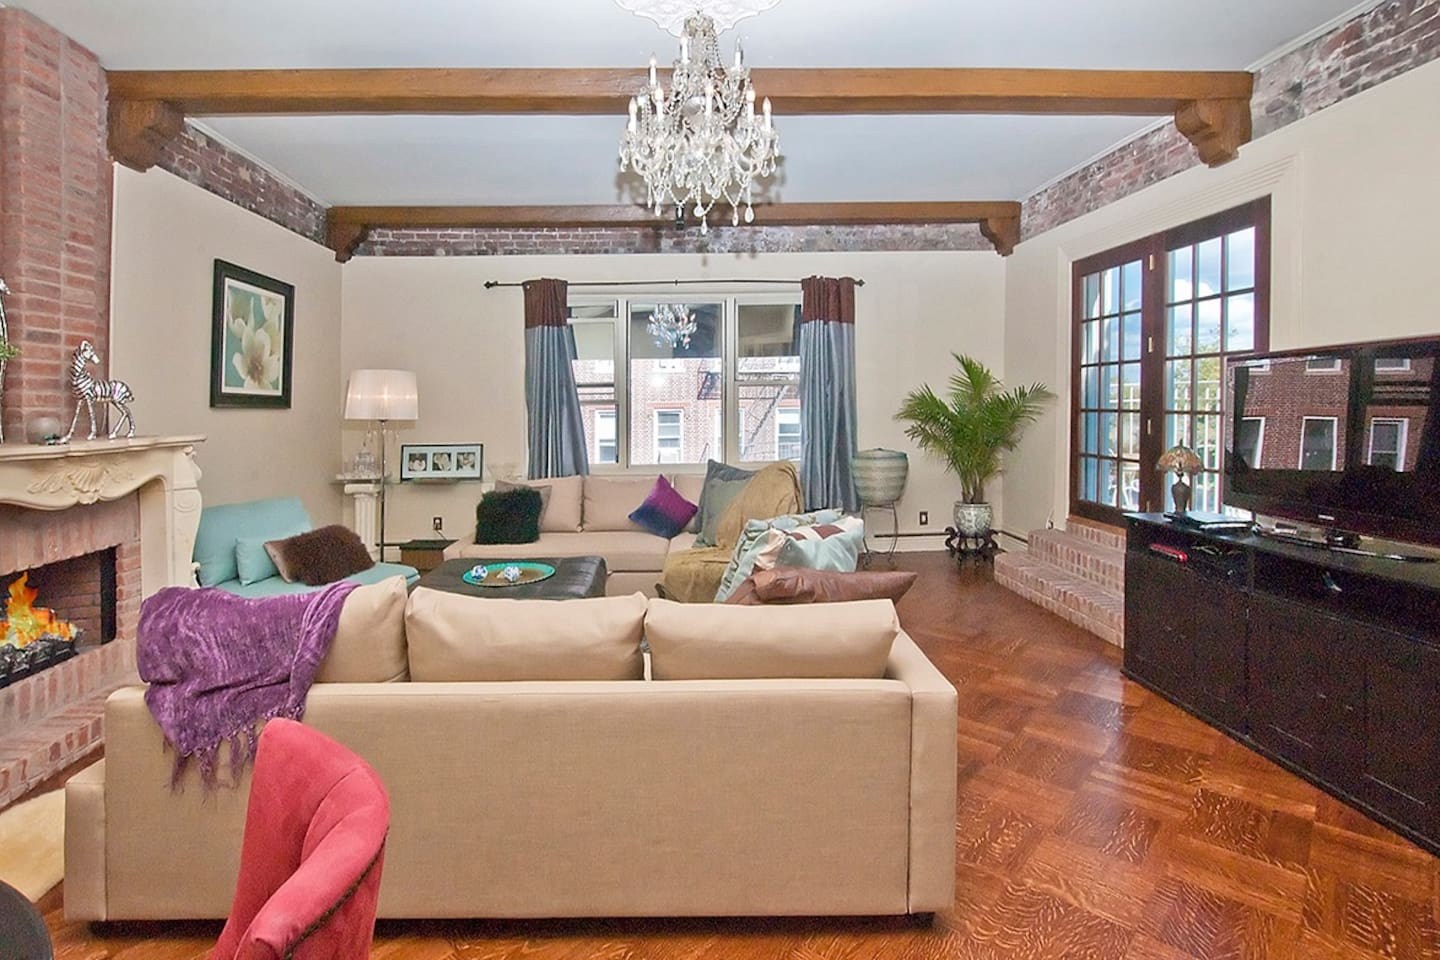 LIVING ROOM WITH LOTS OF CHARM FACING THE SKYLINE VIEW OF UPTOWN MANHATTAN